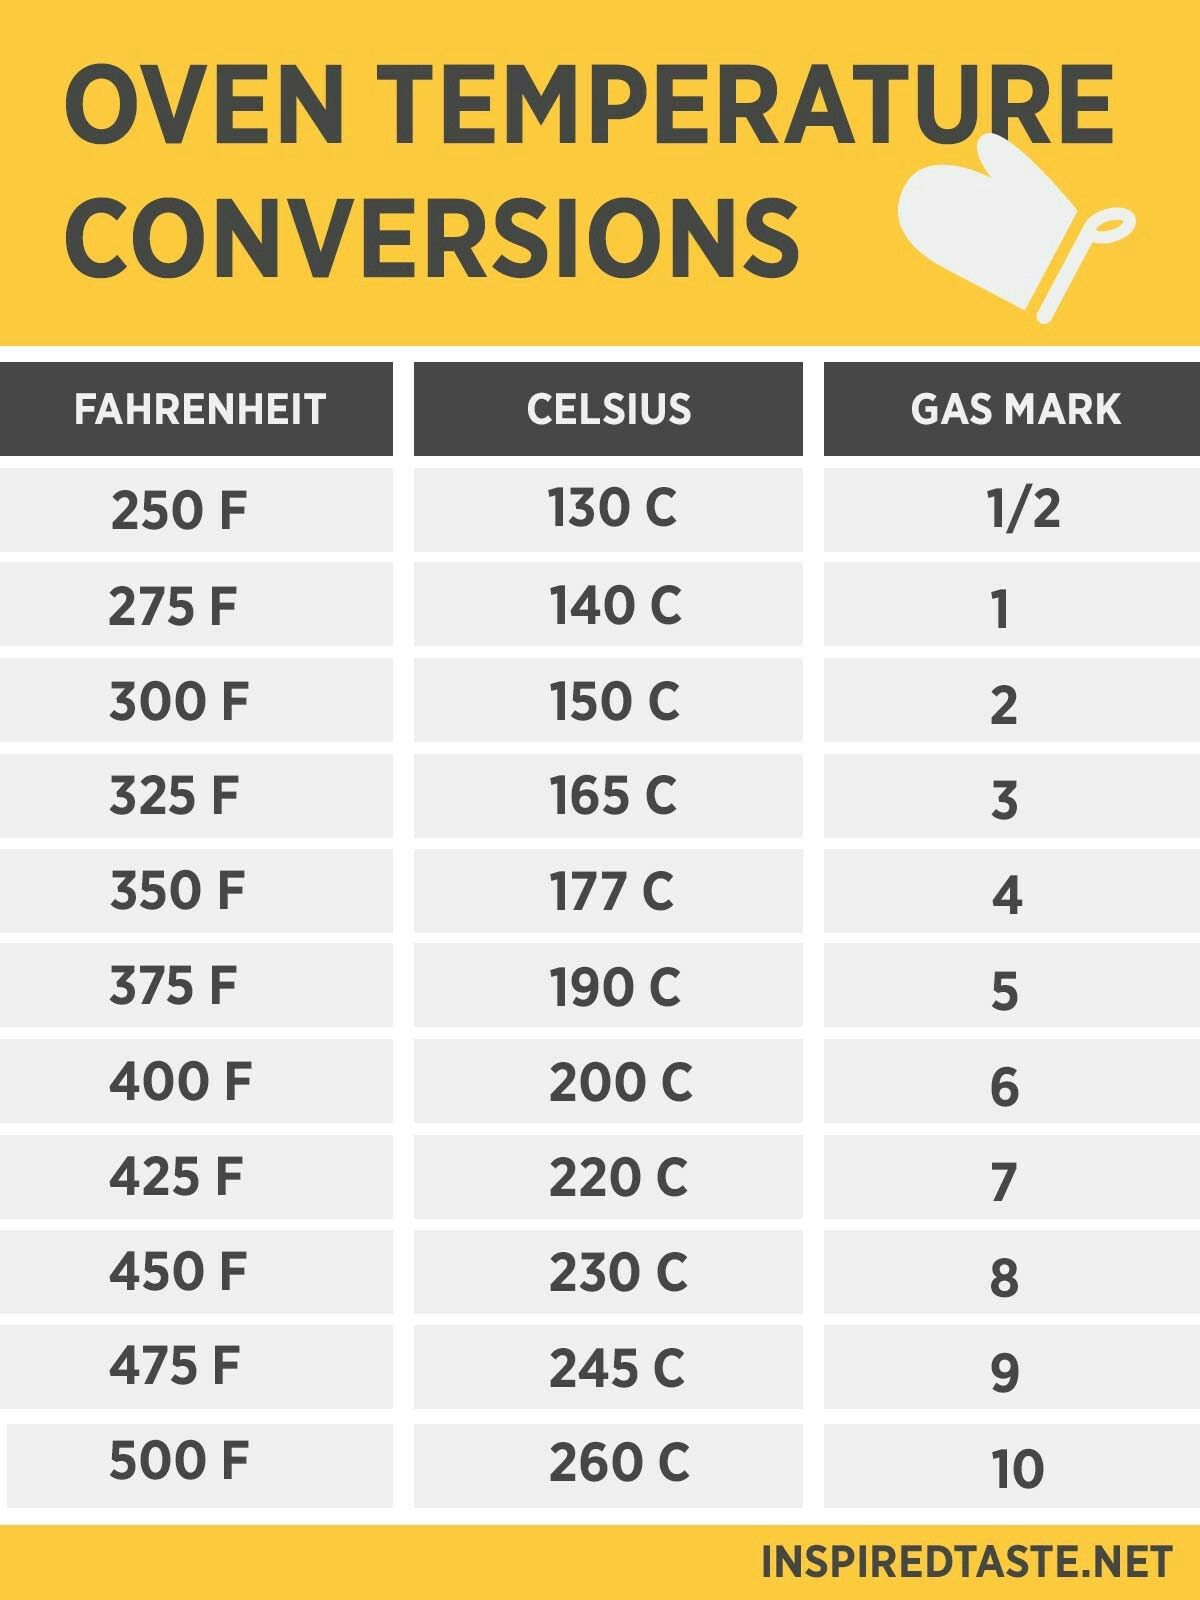 Oven temperature conversion chart fahrenheit to celsius to gas oven temperature conversion chart fahrenheit to celsius to gas mark nvjuhfo Image collections